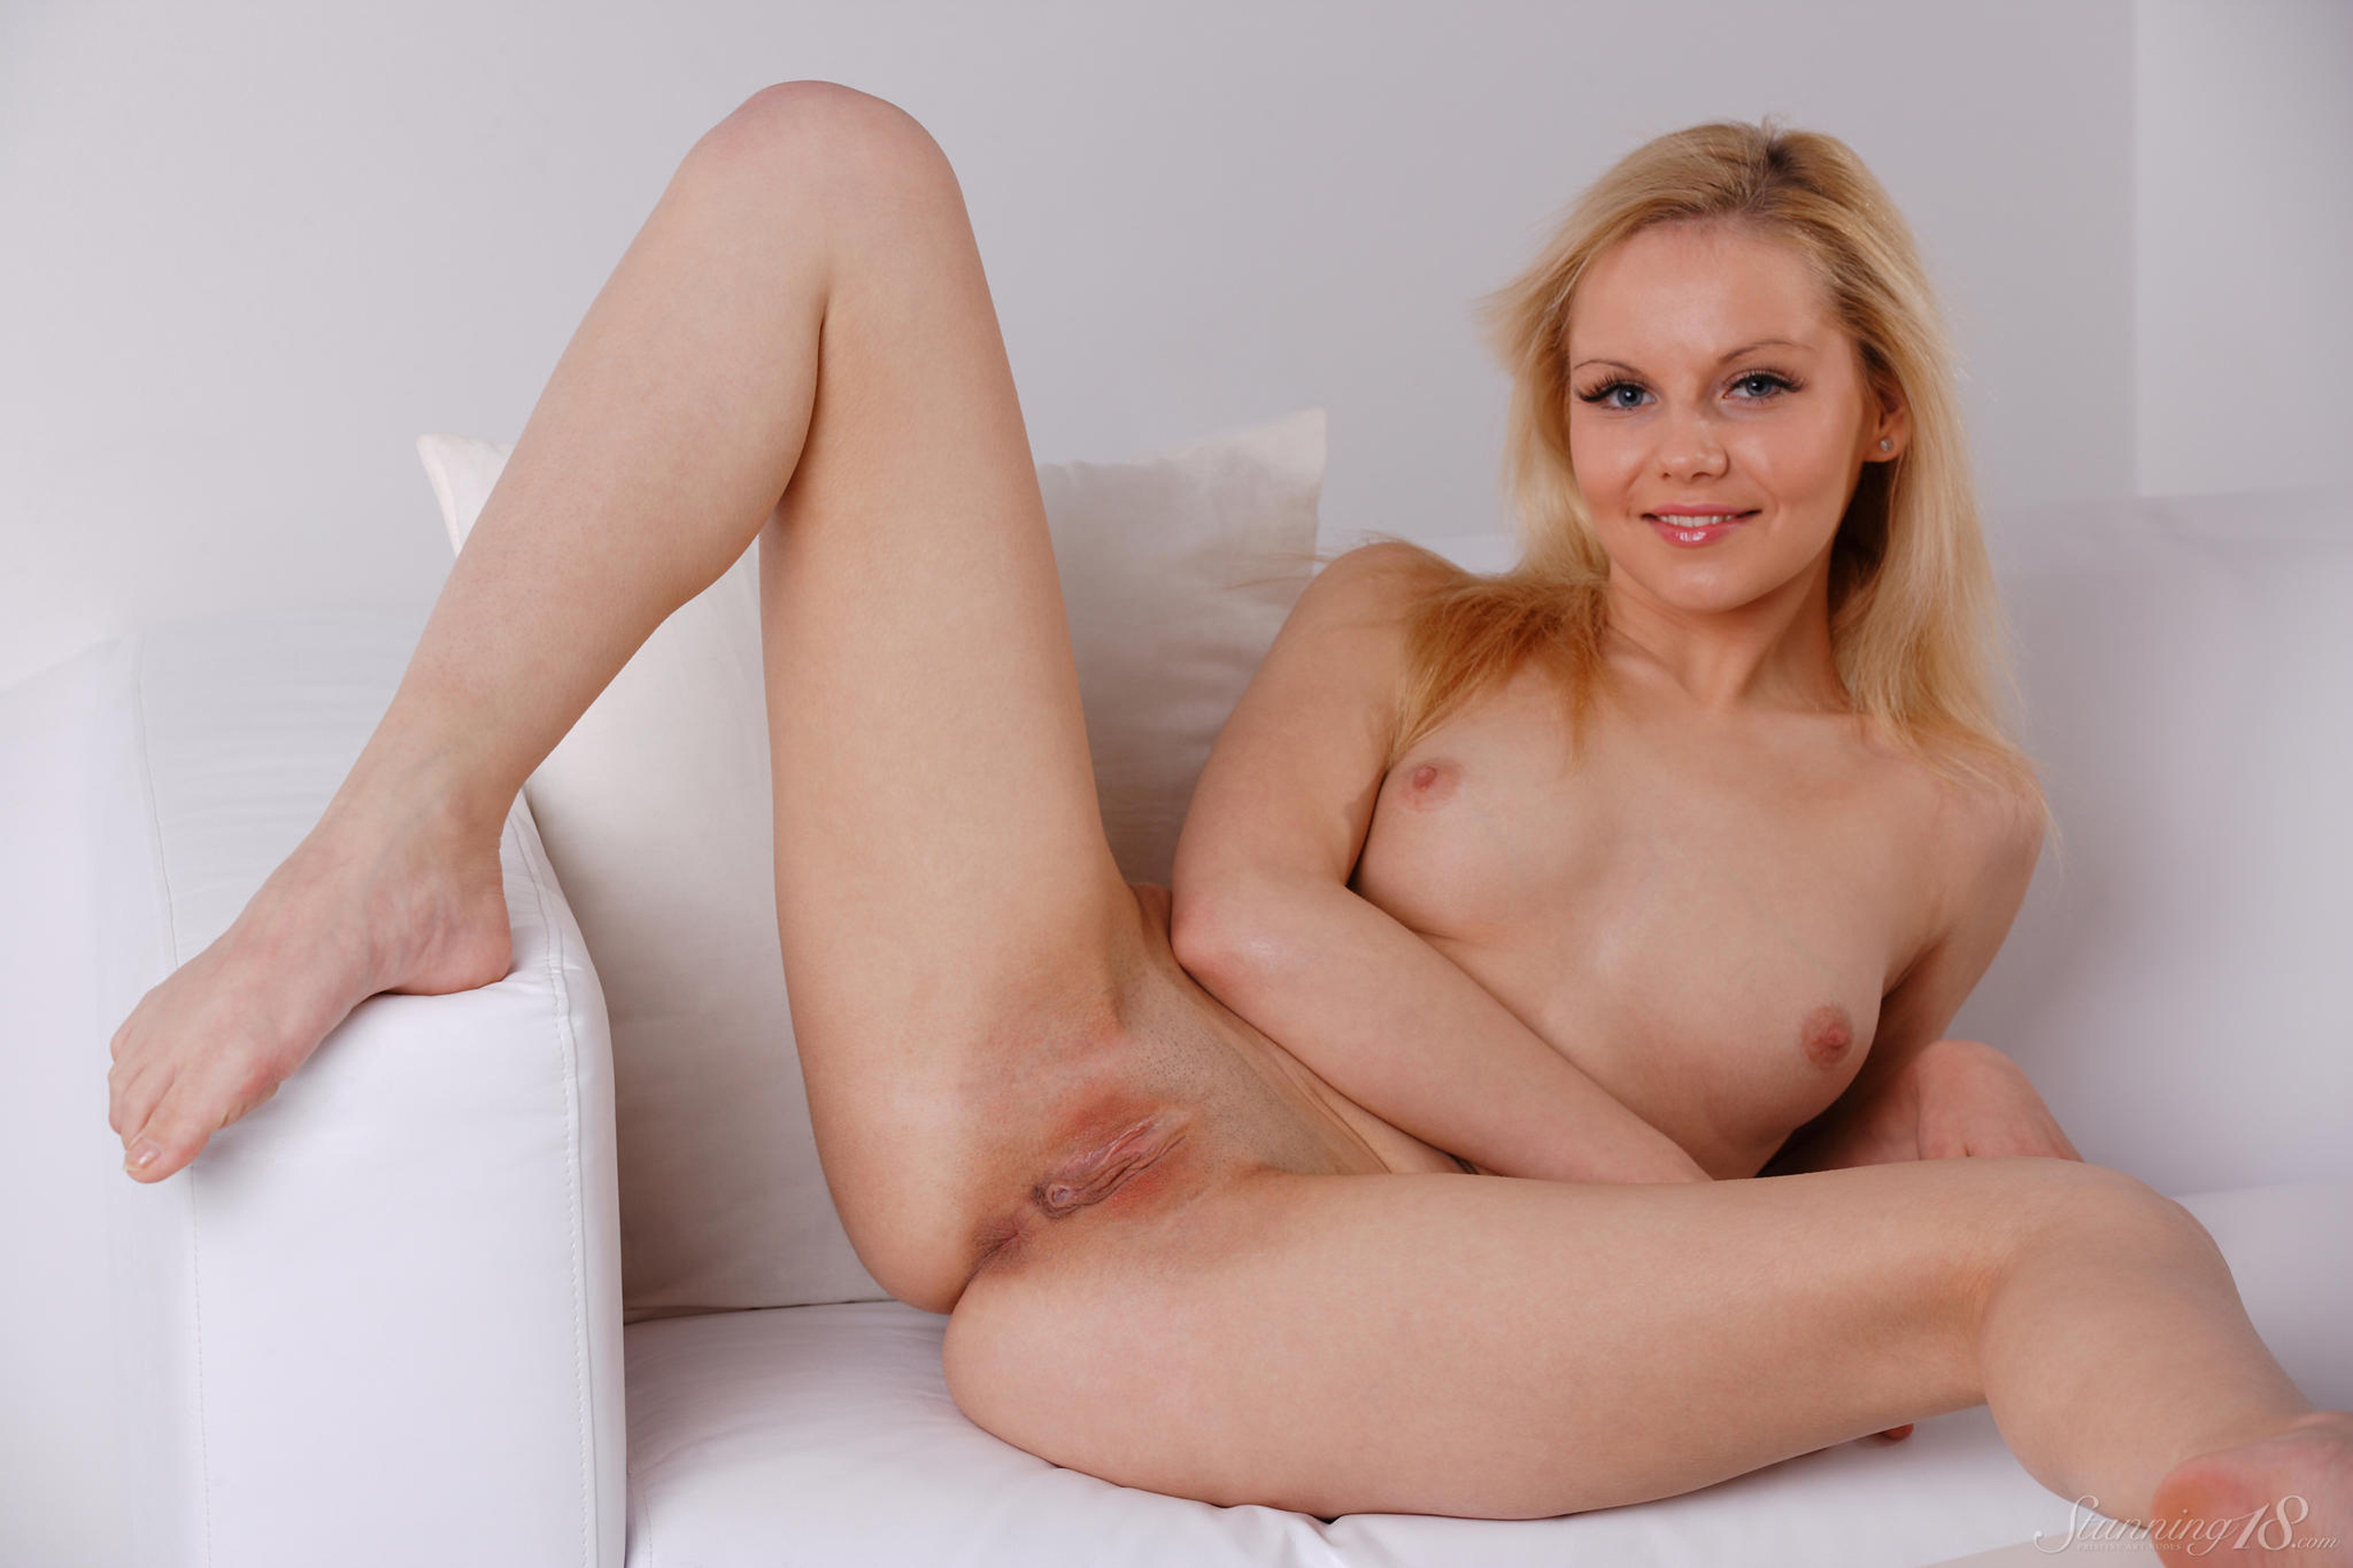 Free hot blondes nude